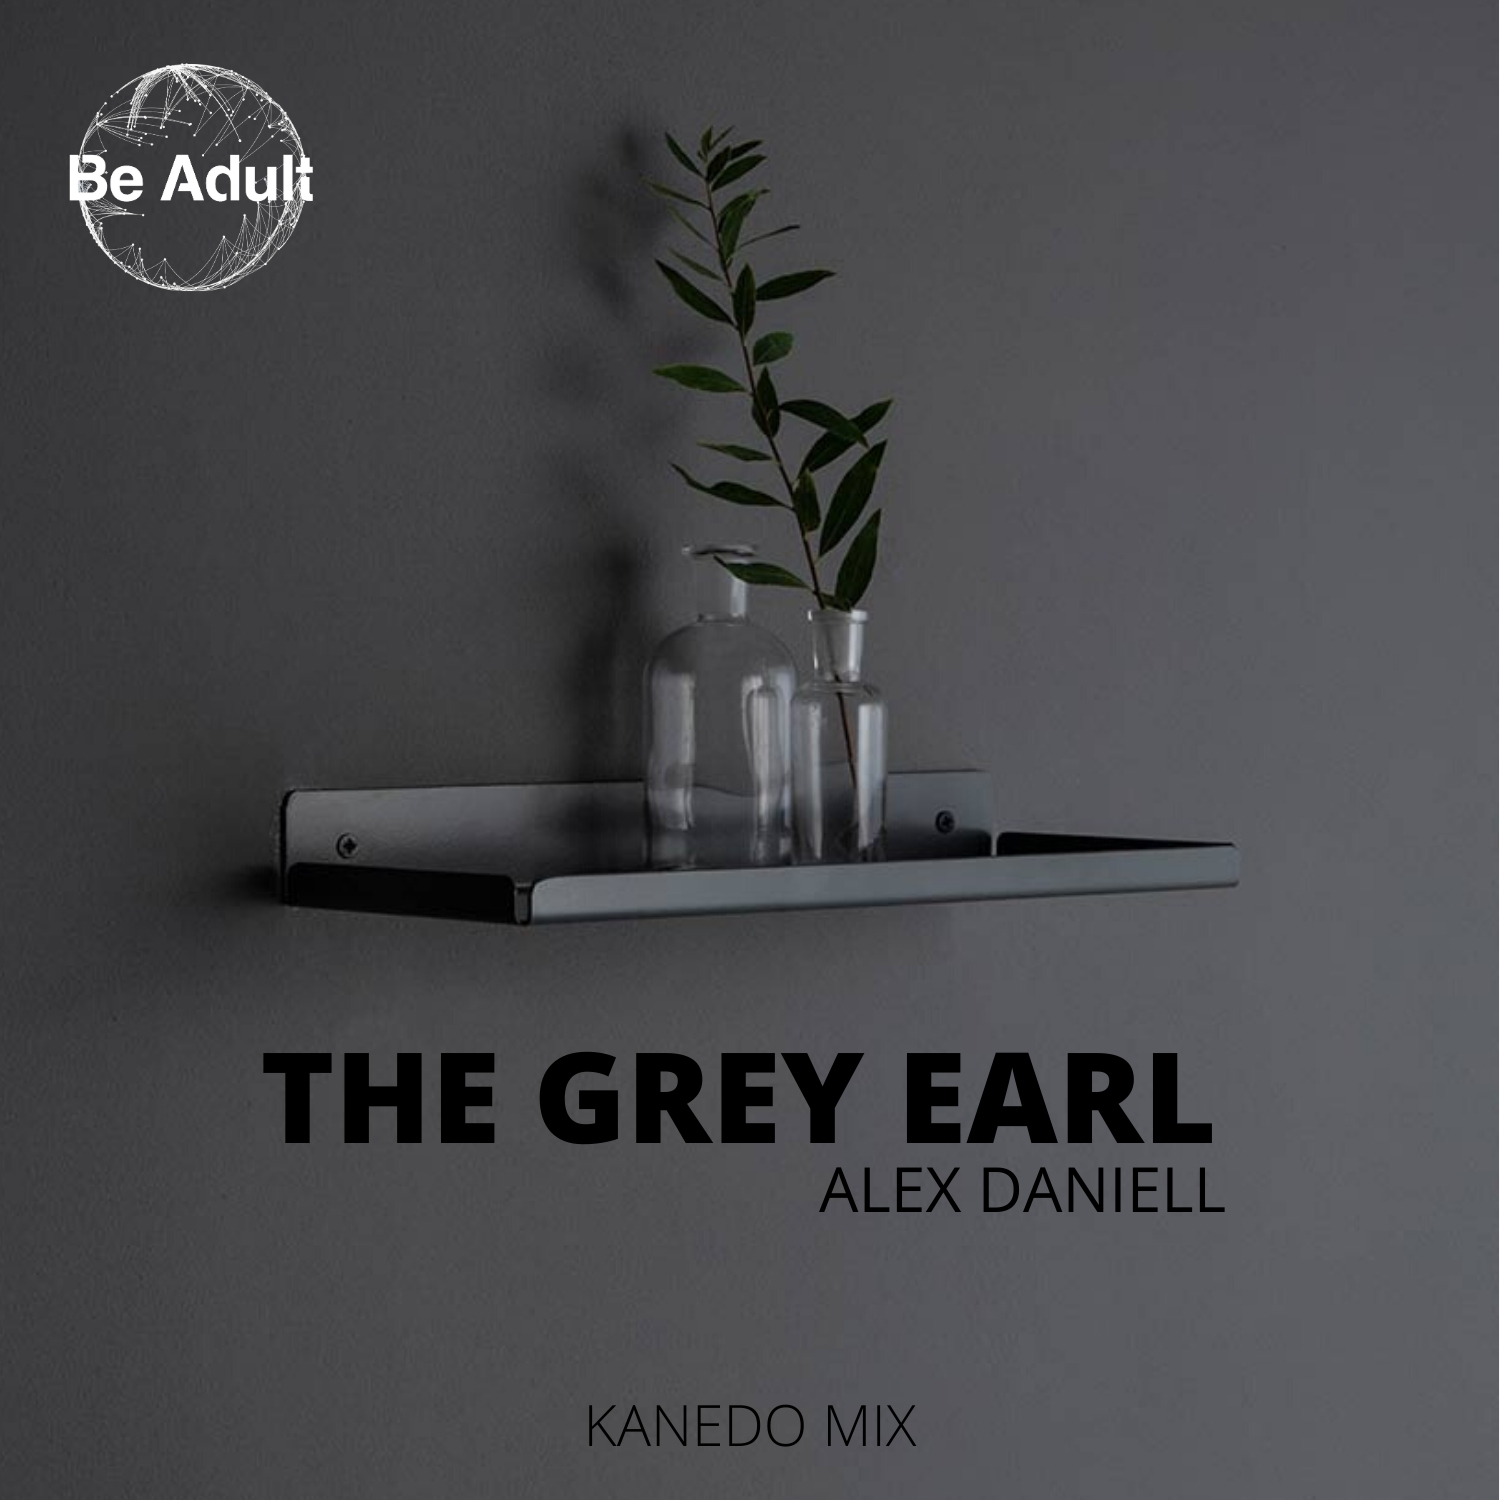 The Grey Earl Kanedo Mix